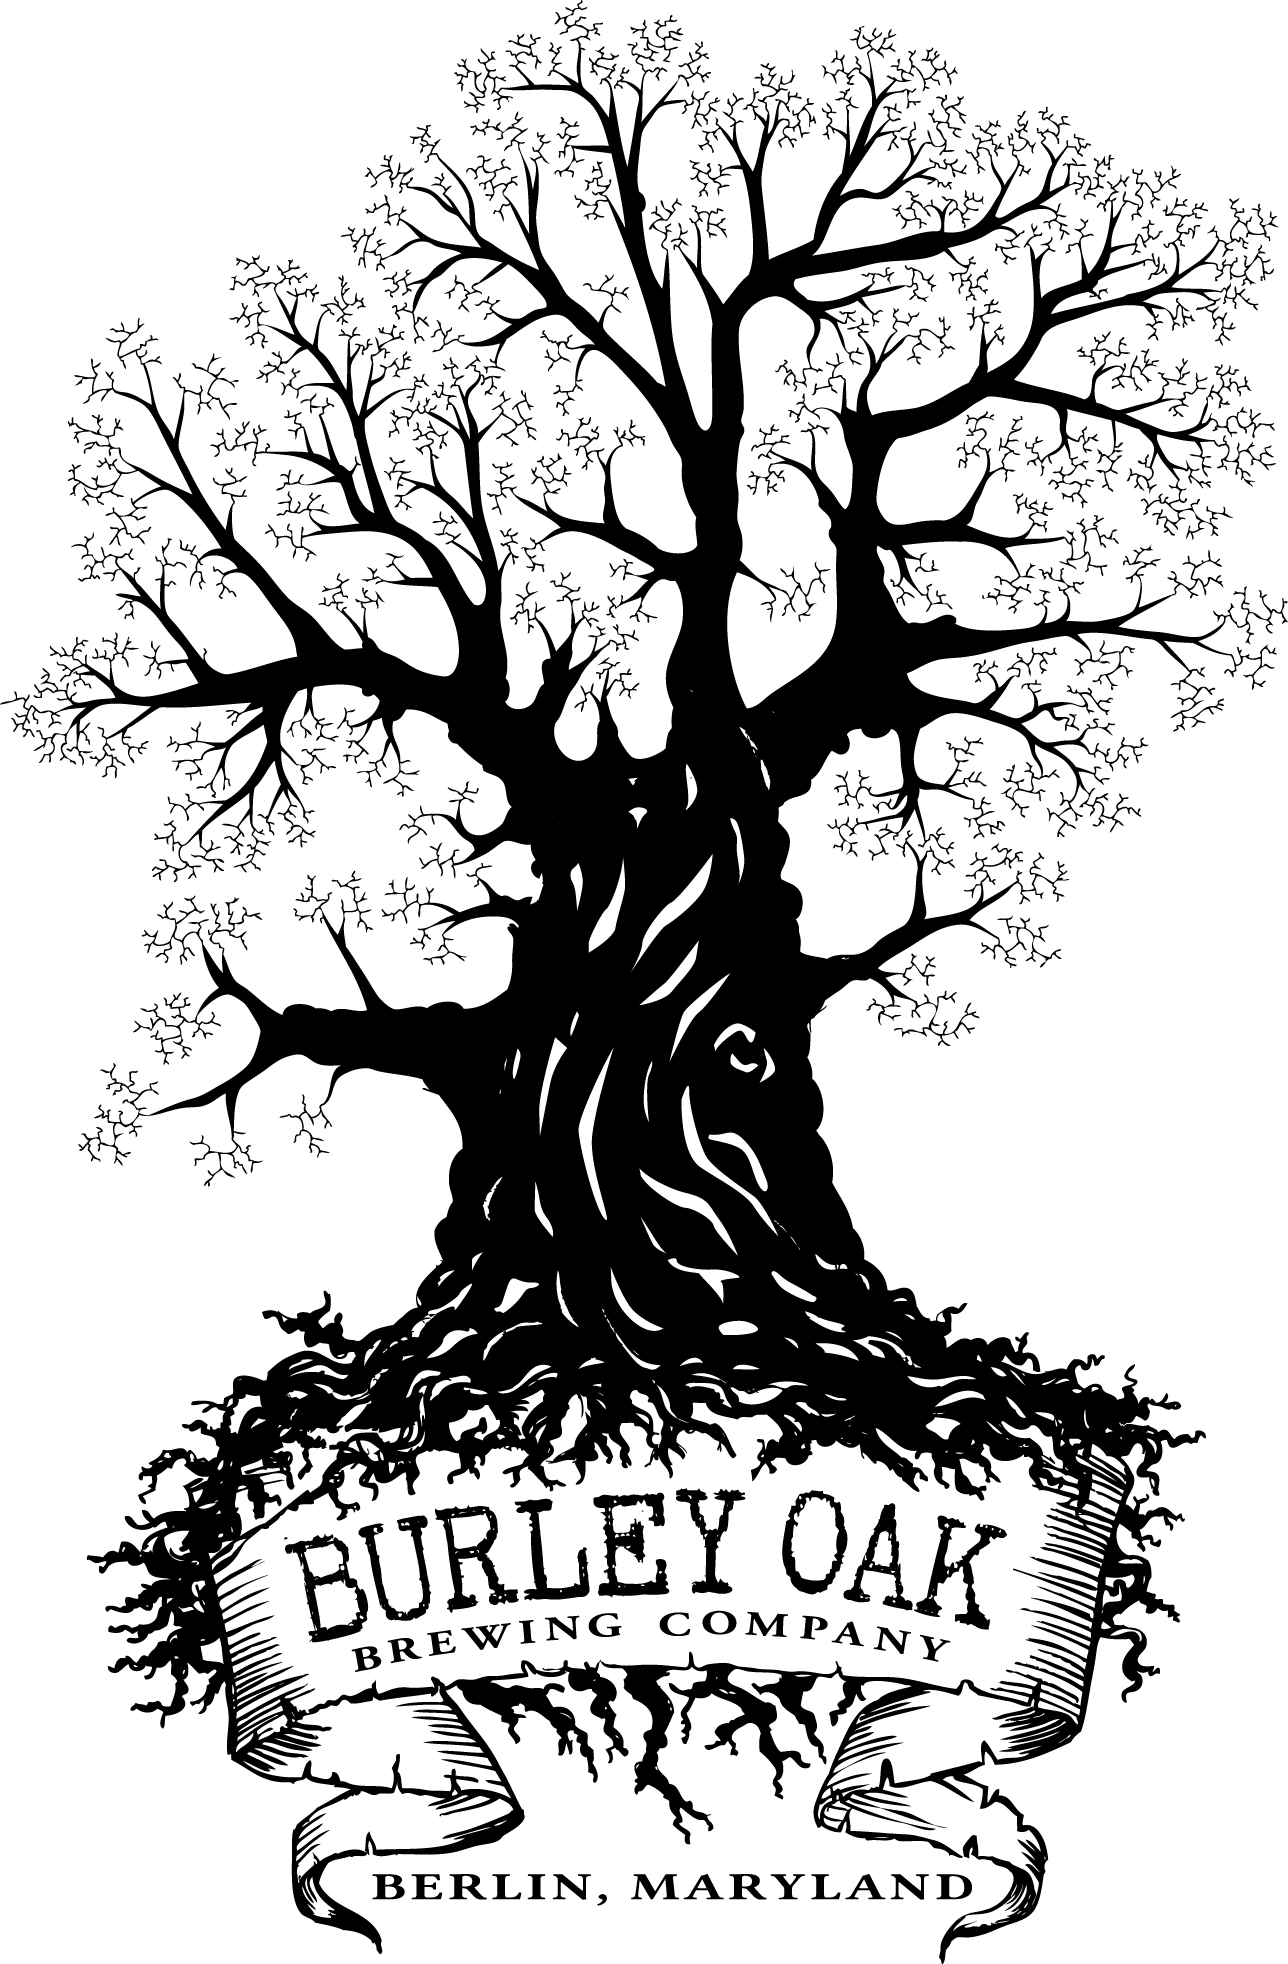 Burley Oak Blueberry Peach Lemonatti